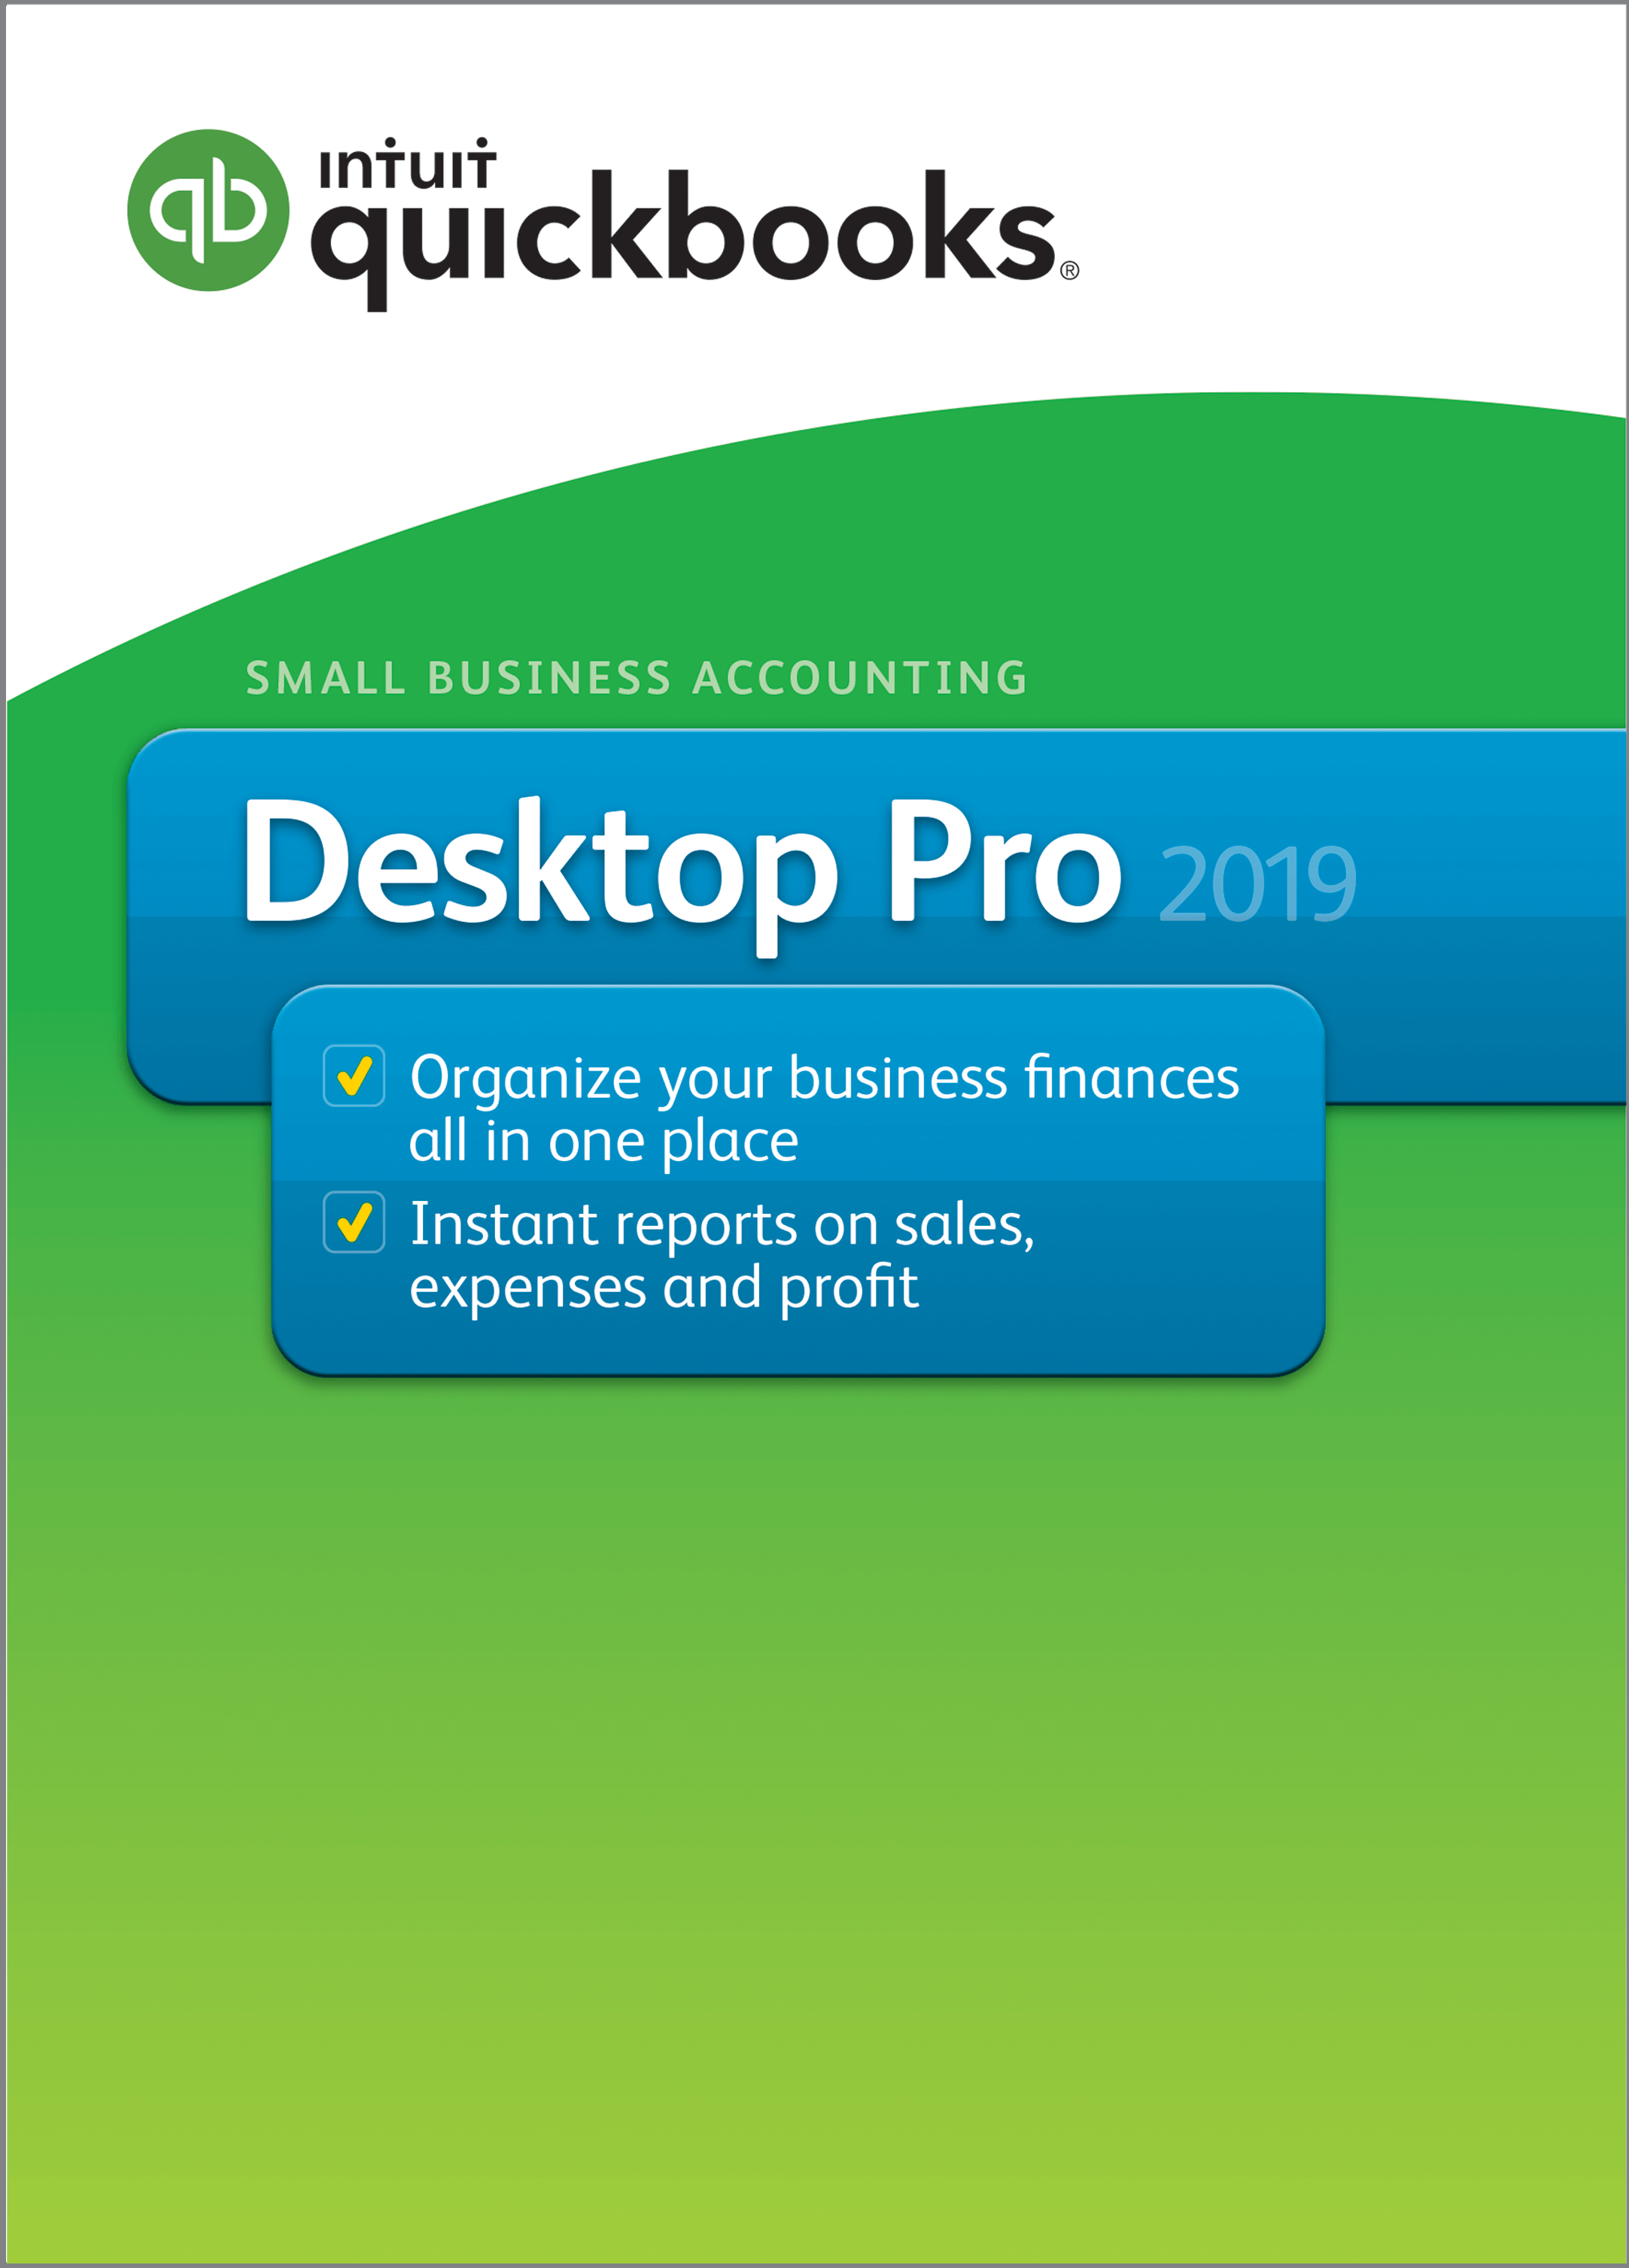 quickbooks pro 2019 desktop download